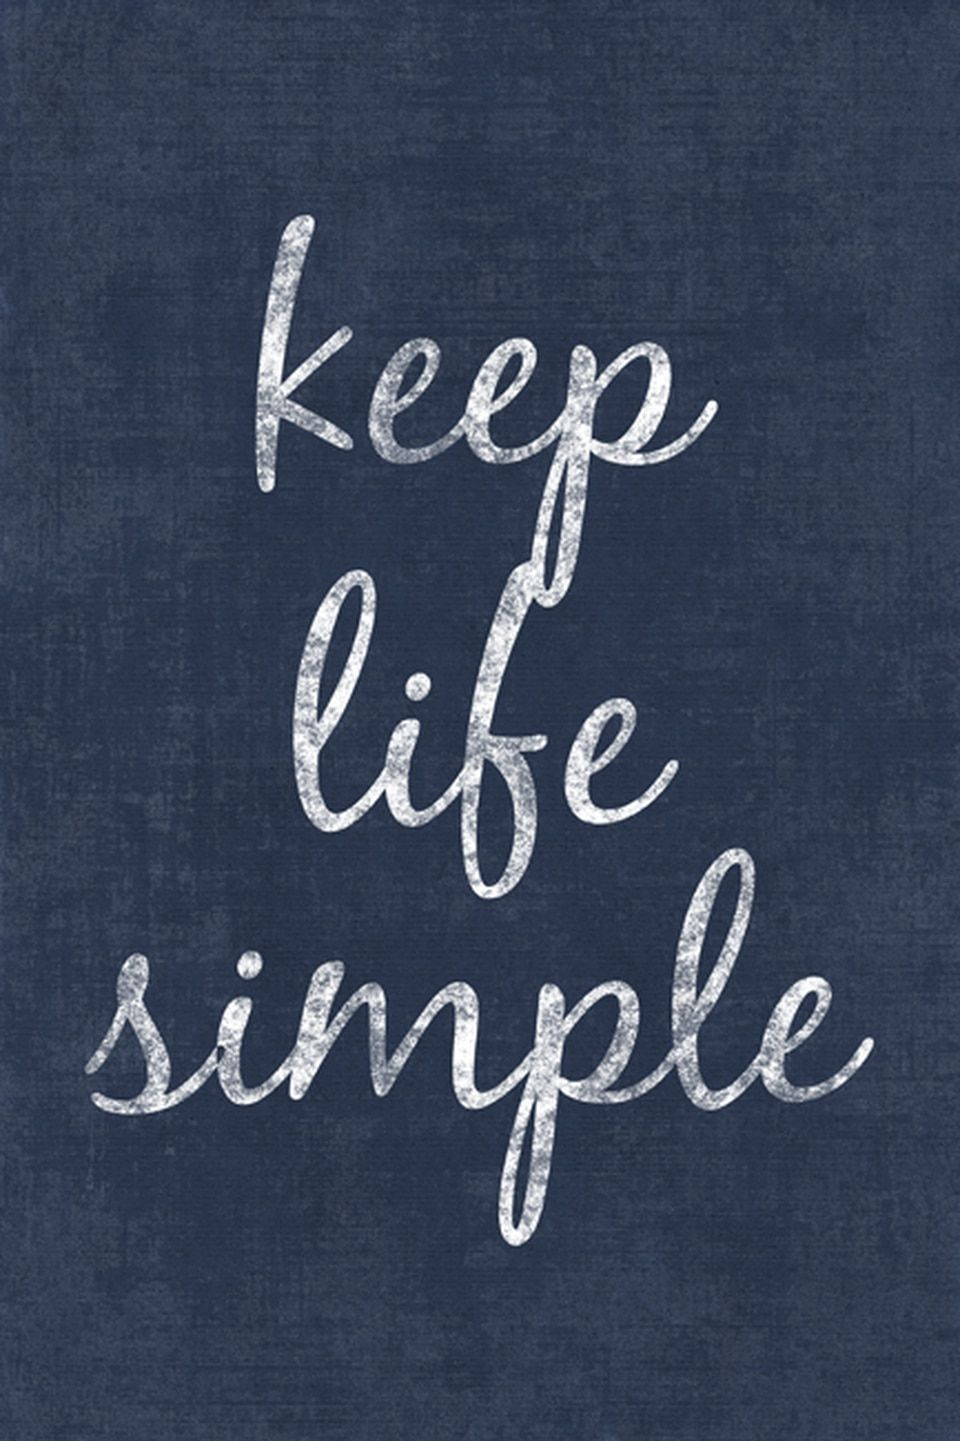 Keep Life Simple Motivational Poster Print In 2020 Keep Life Simple 7 Rules Of Life Motivational Posters